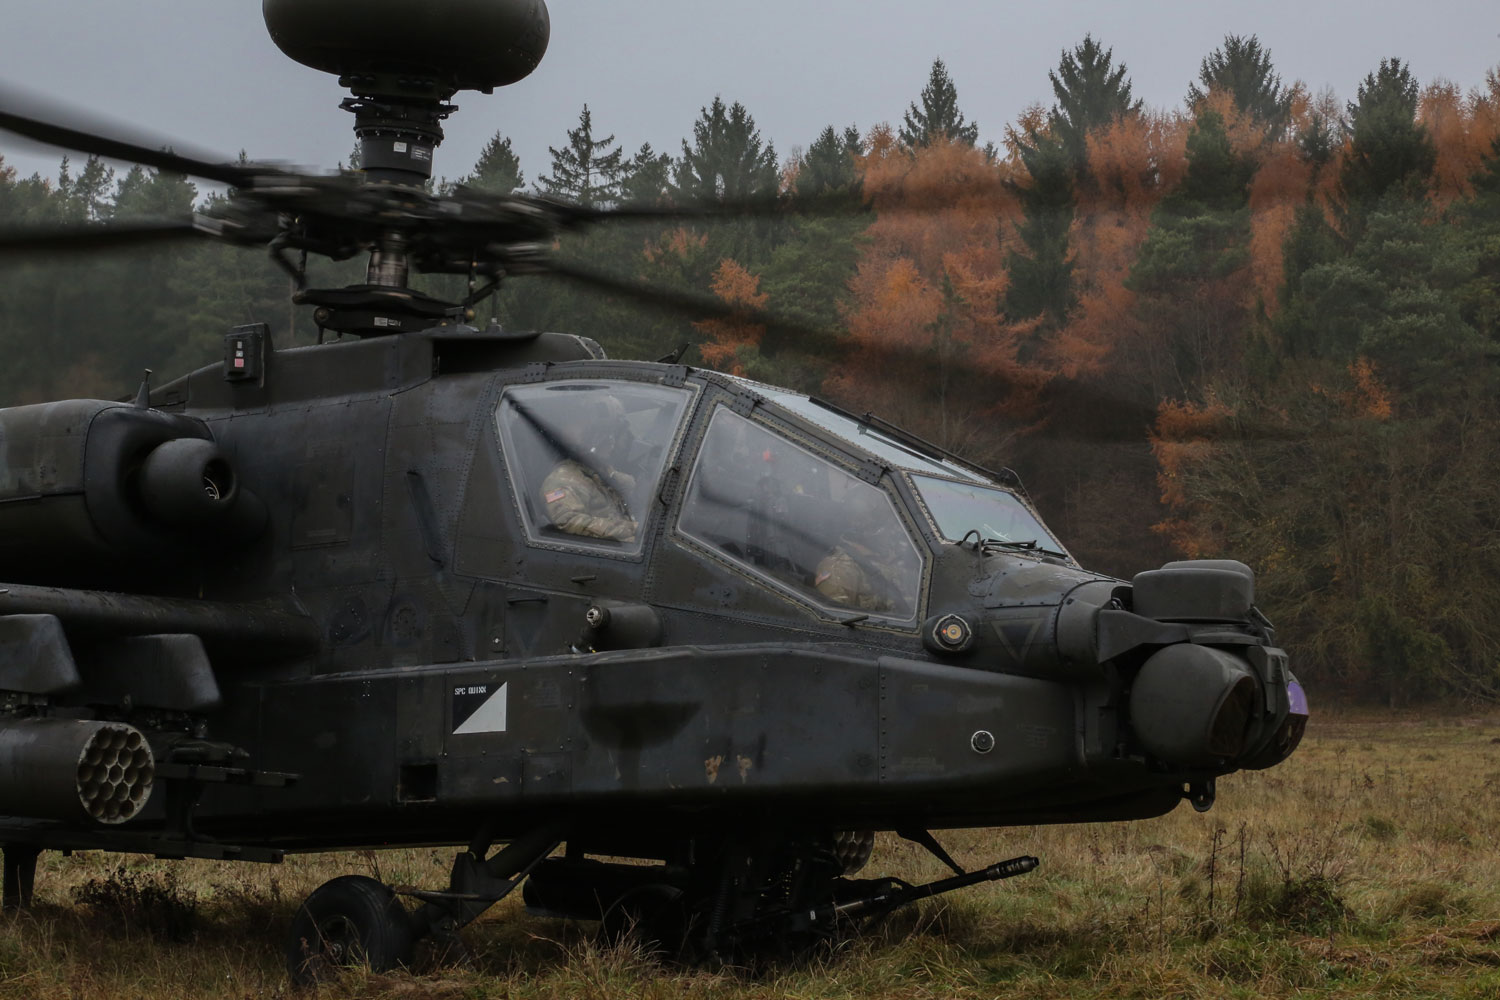 Allied Spirit is a U.S. Army Europe-directed, 7ATC-conducted multinational exercise series designed to develop and enhance NATO and key partner's interoperability and readiness.